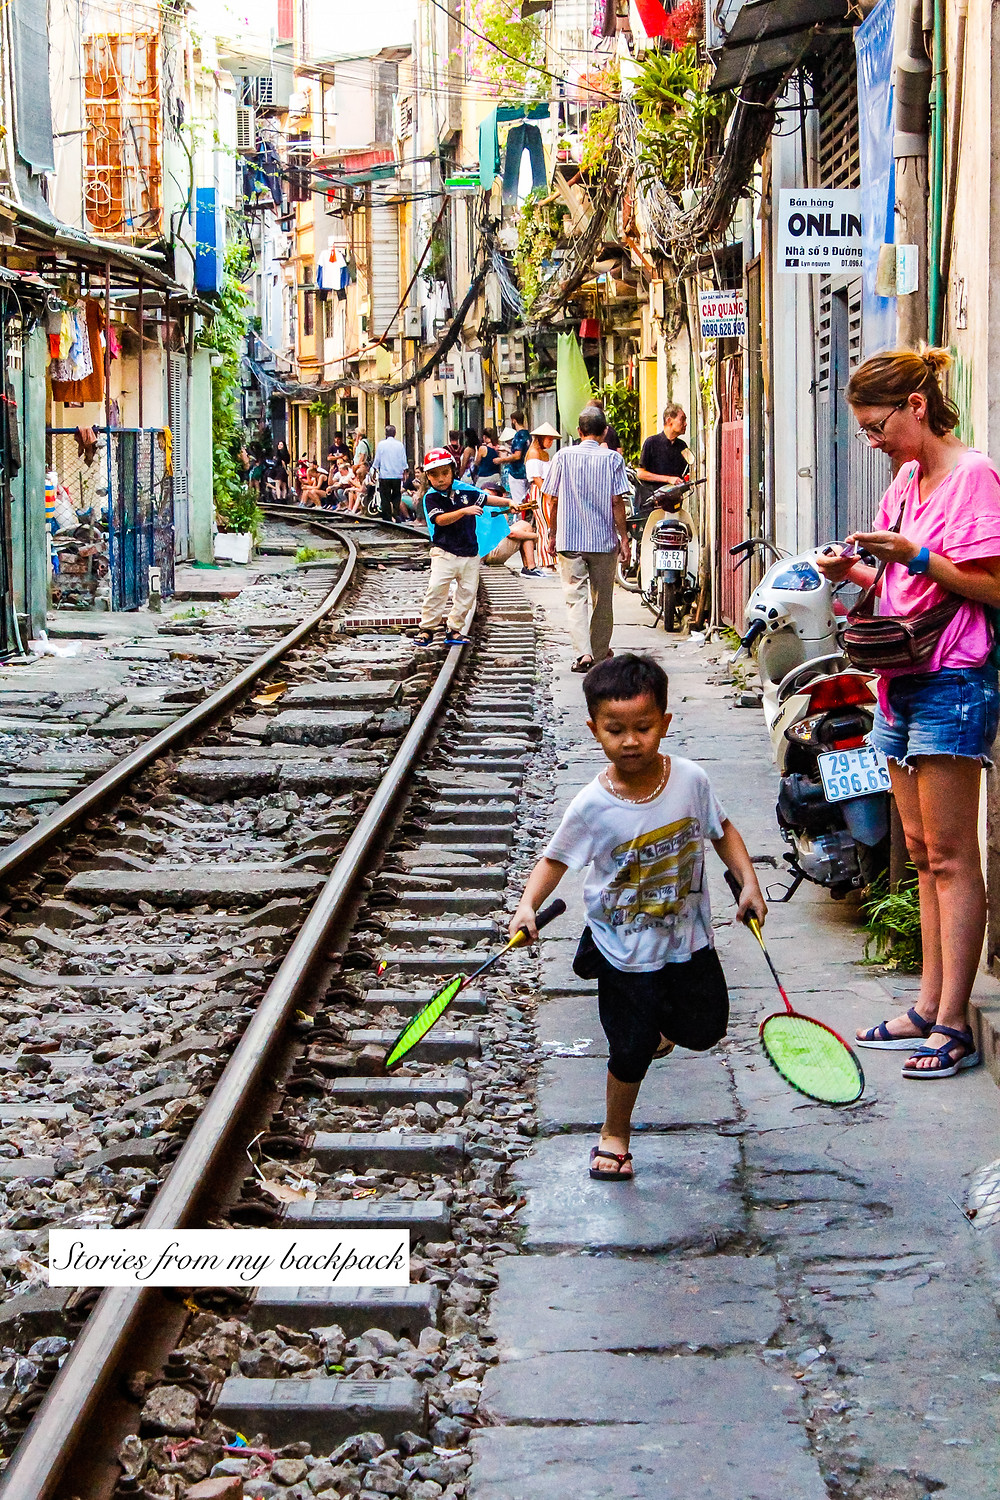 Train street, offbeat things to do in Hanoi, things to do in Hanoi, train street Hanoi, train street, interesting things to see in Vietnam, best places to visit in Vietnam